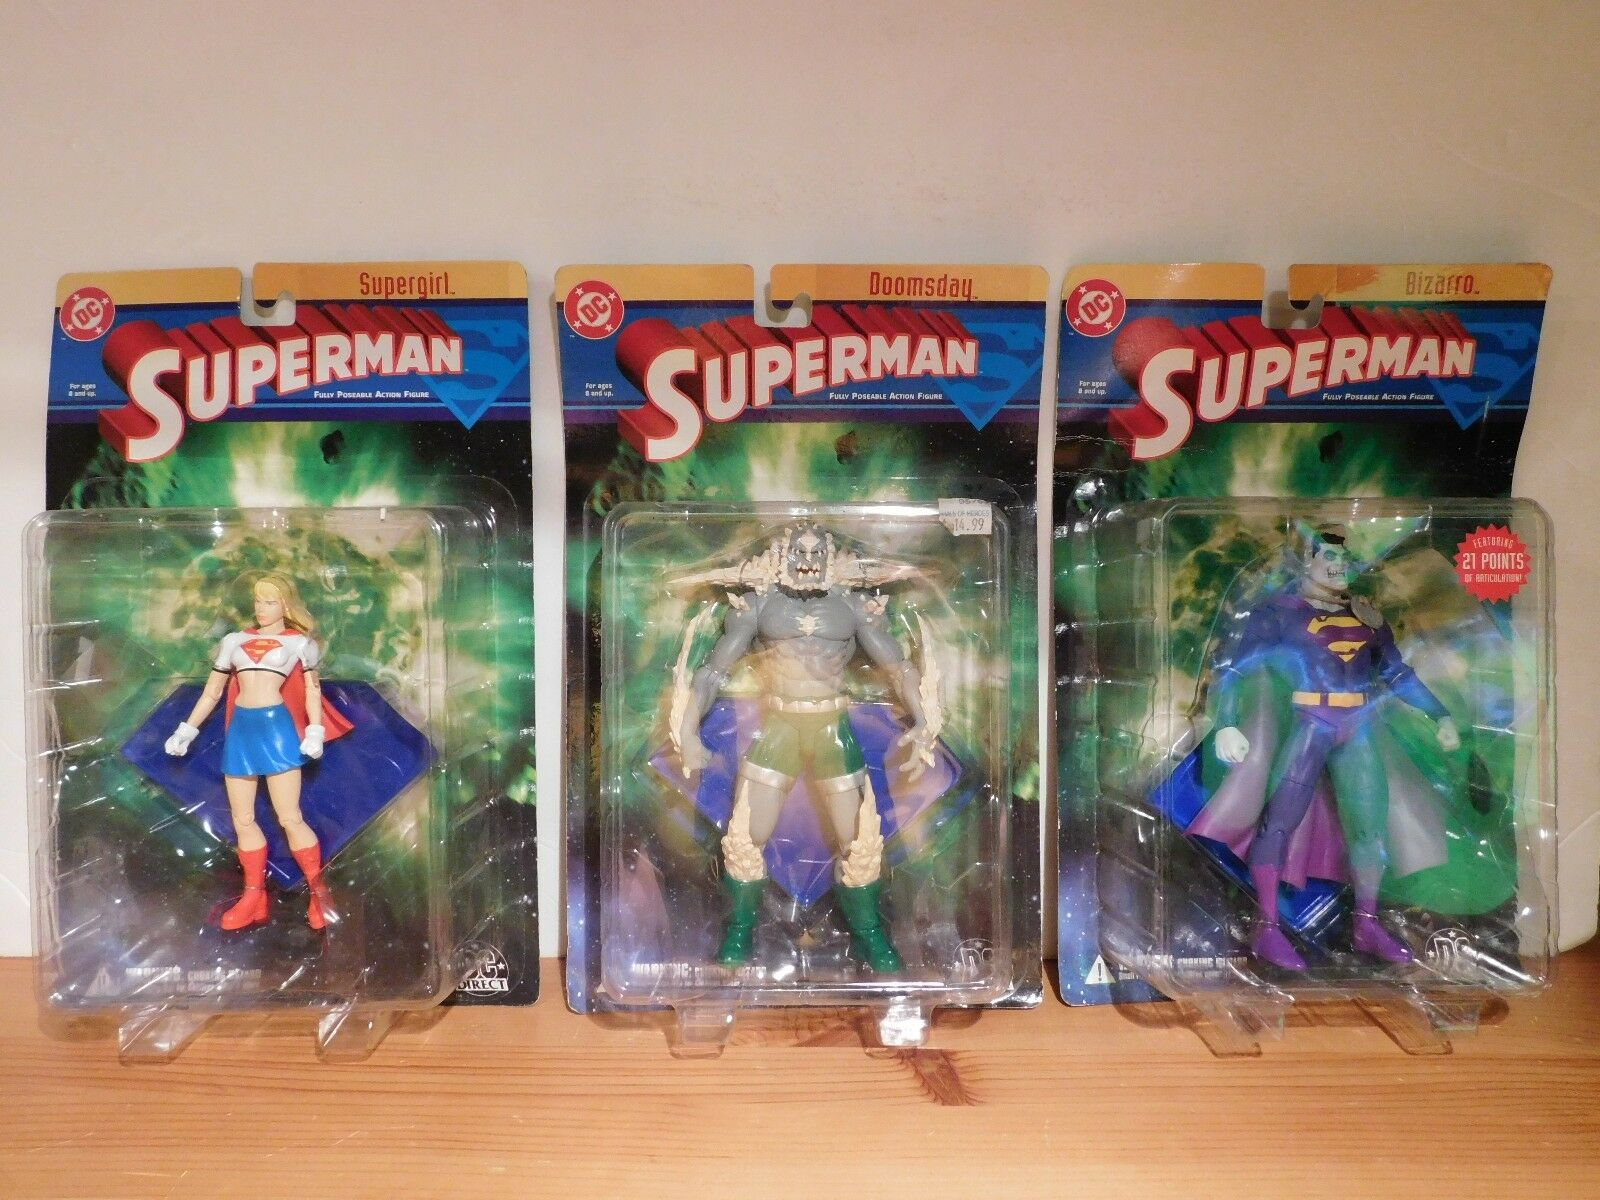 DC Superman Figures - Supergirl, Doomsday, Bizarro